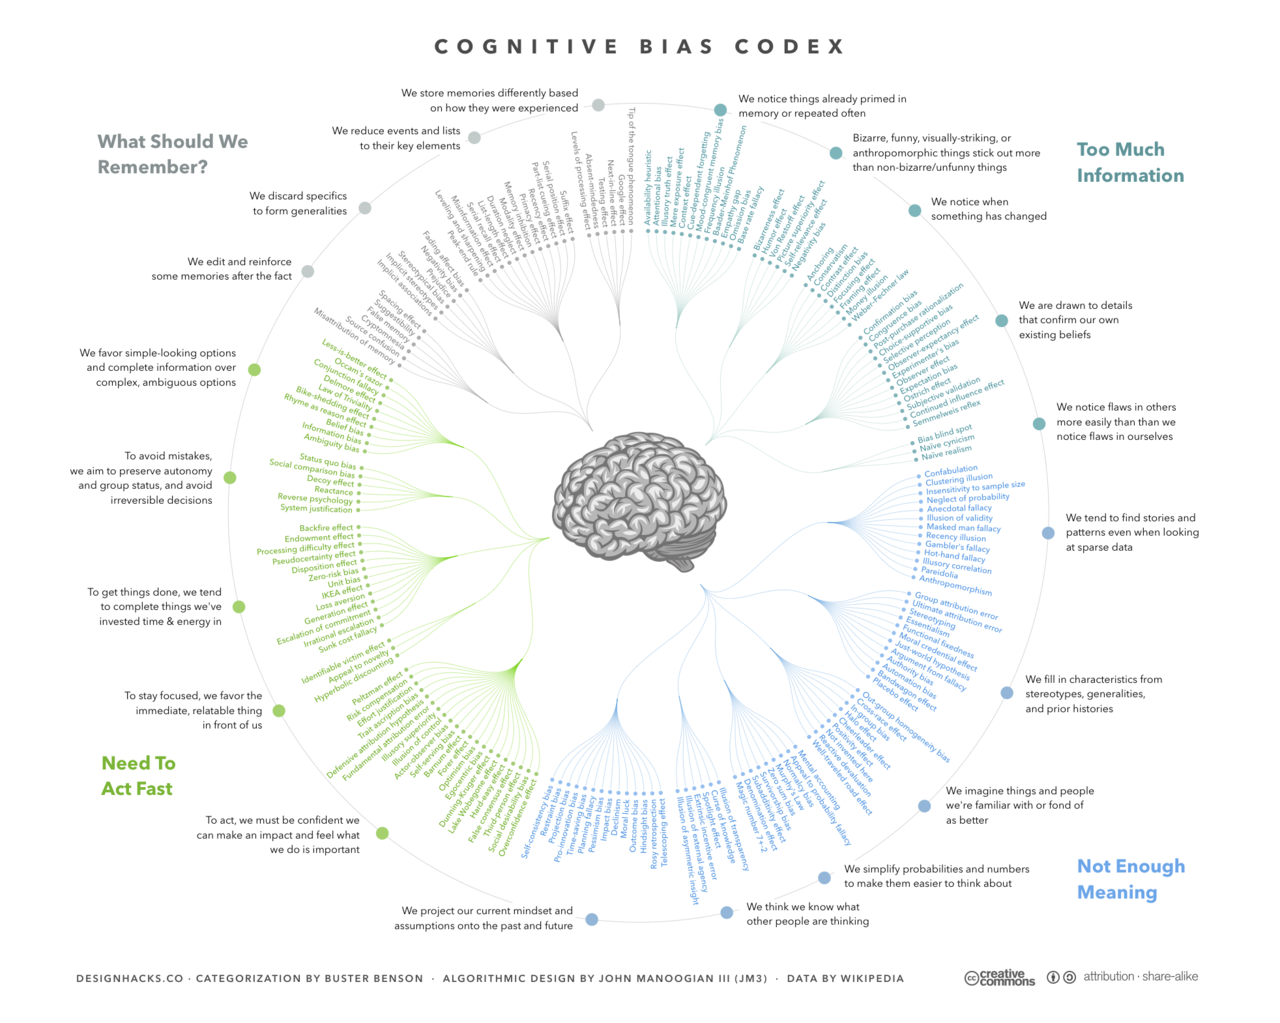 Data Storytelling The_Cognitive_Bias_Codex_-_180+_biases,_designed_by_John_Manoogian_III_(jm3)